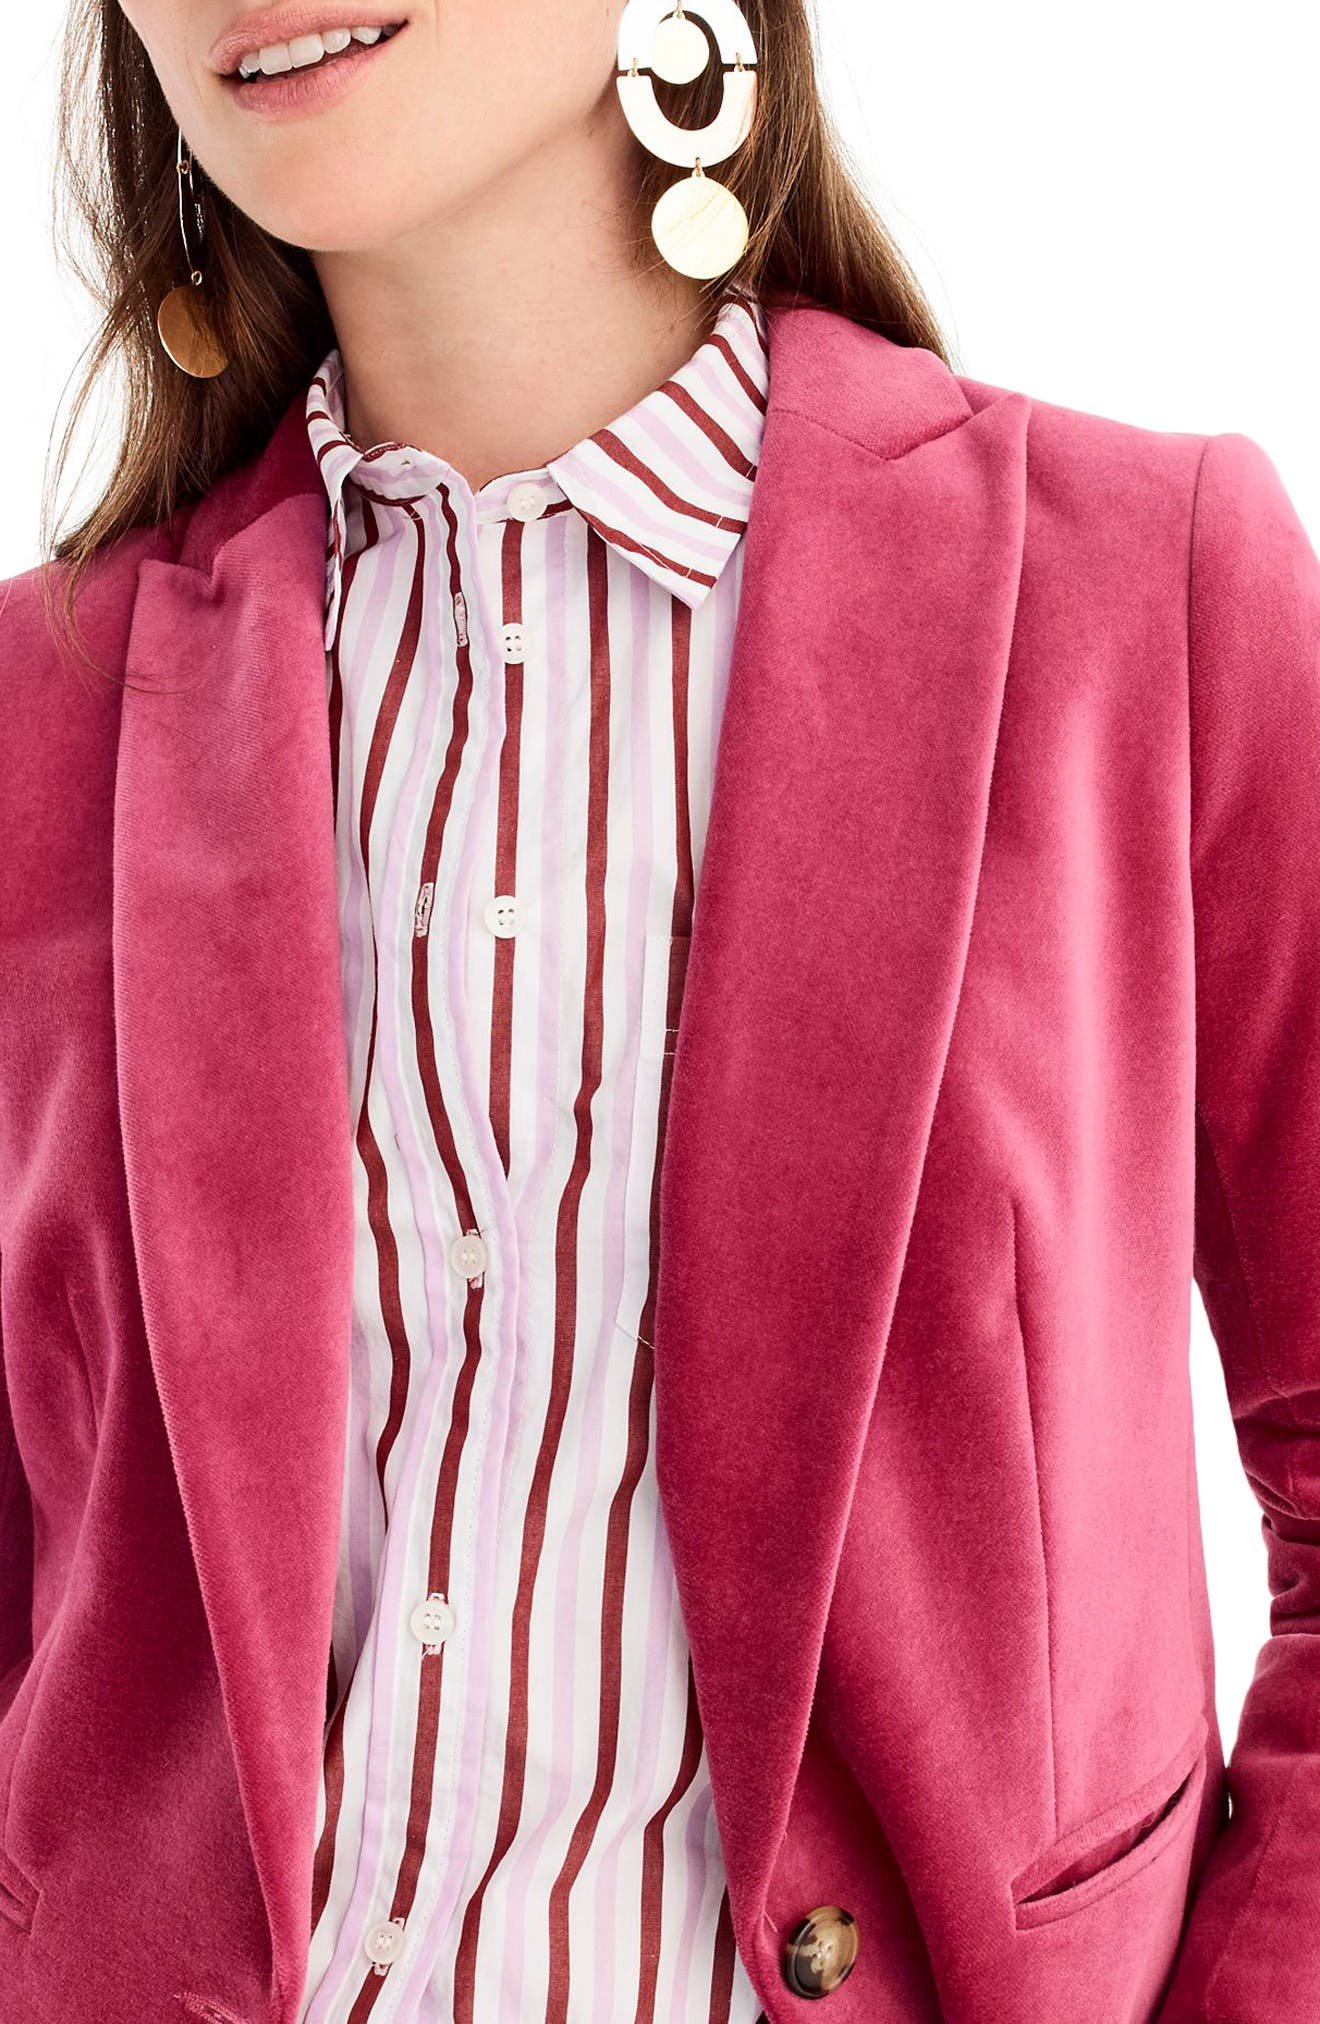 Parke Velvet Blazer,                             Alternate thumbnail 5, color,                             DRIED ROSE